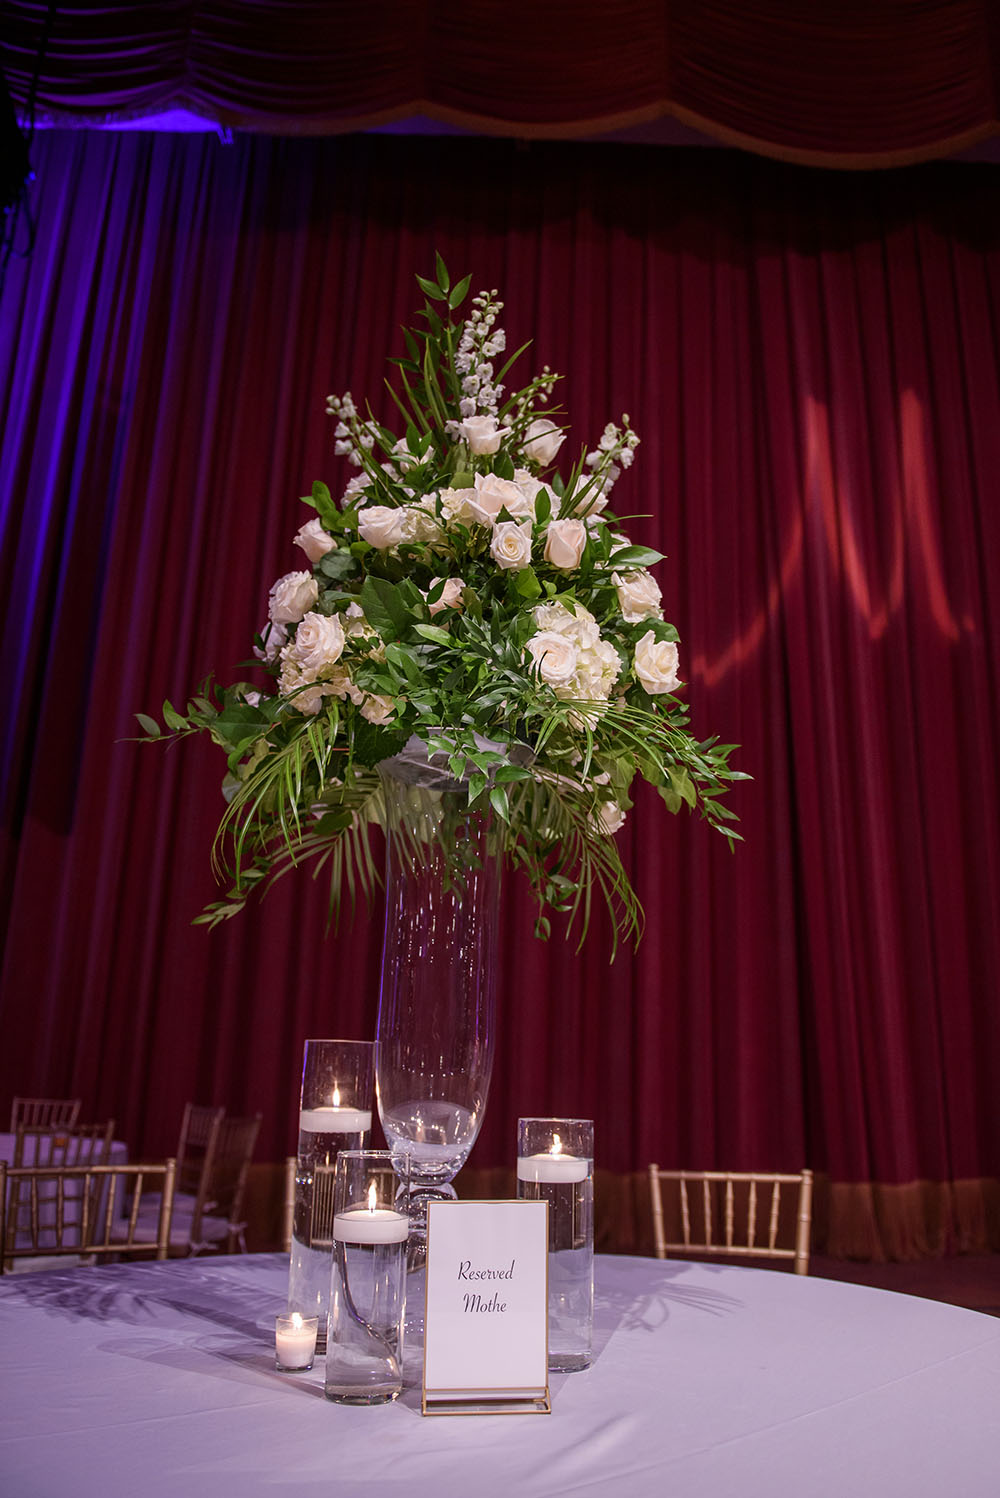 floral centeripiece with white roses and floating candles